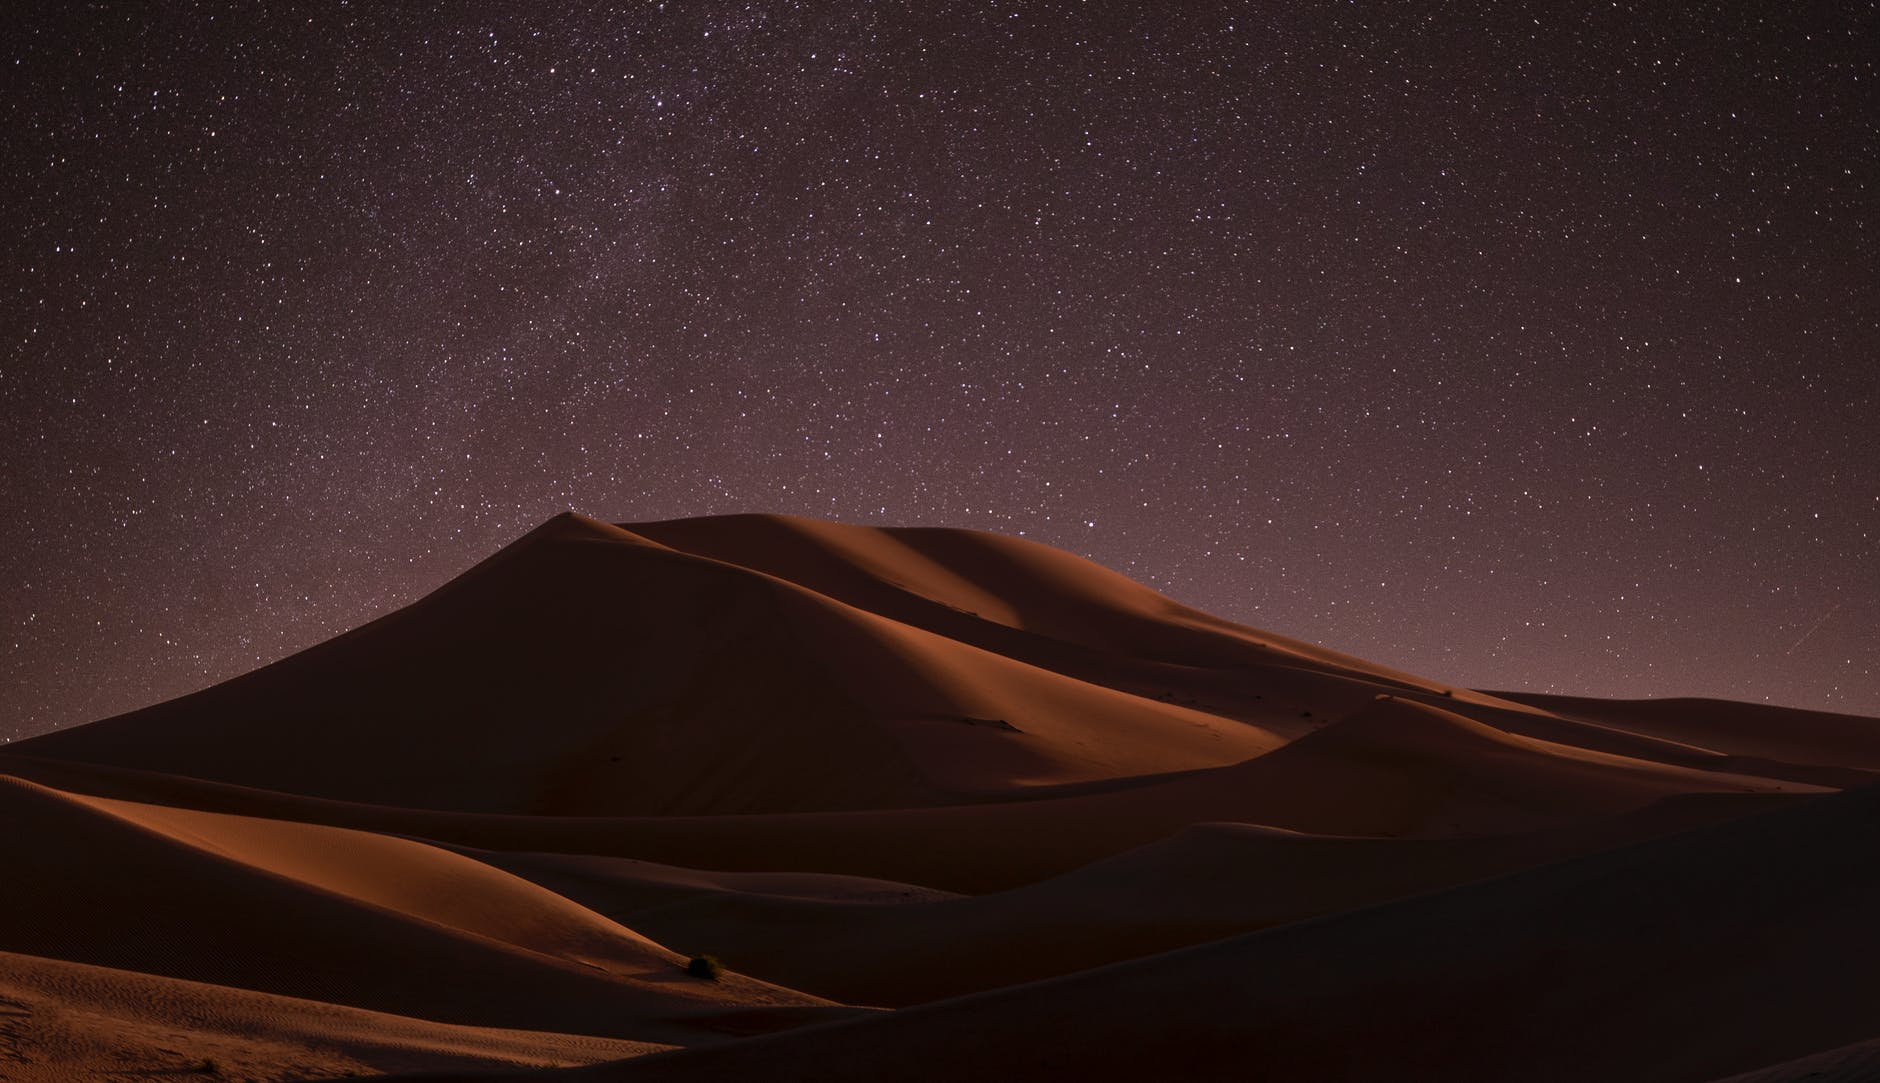 A sand dune at night.